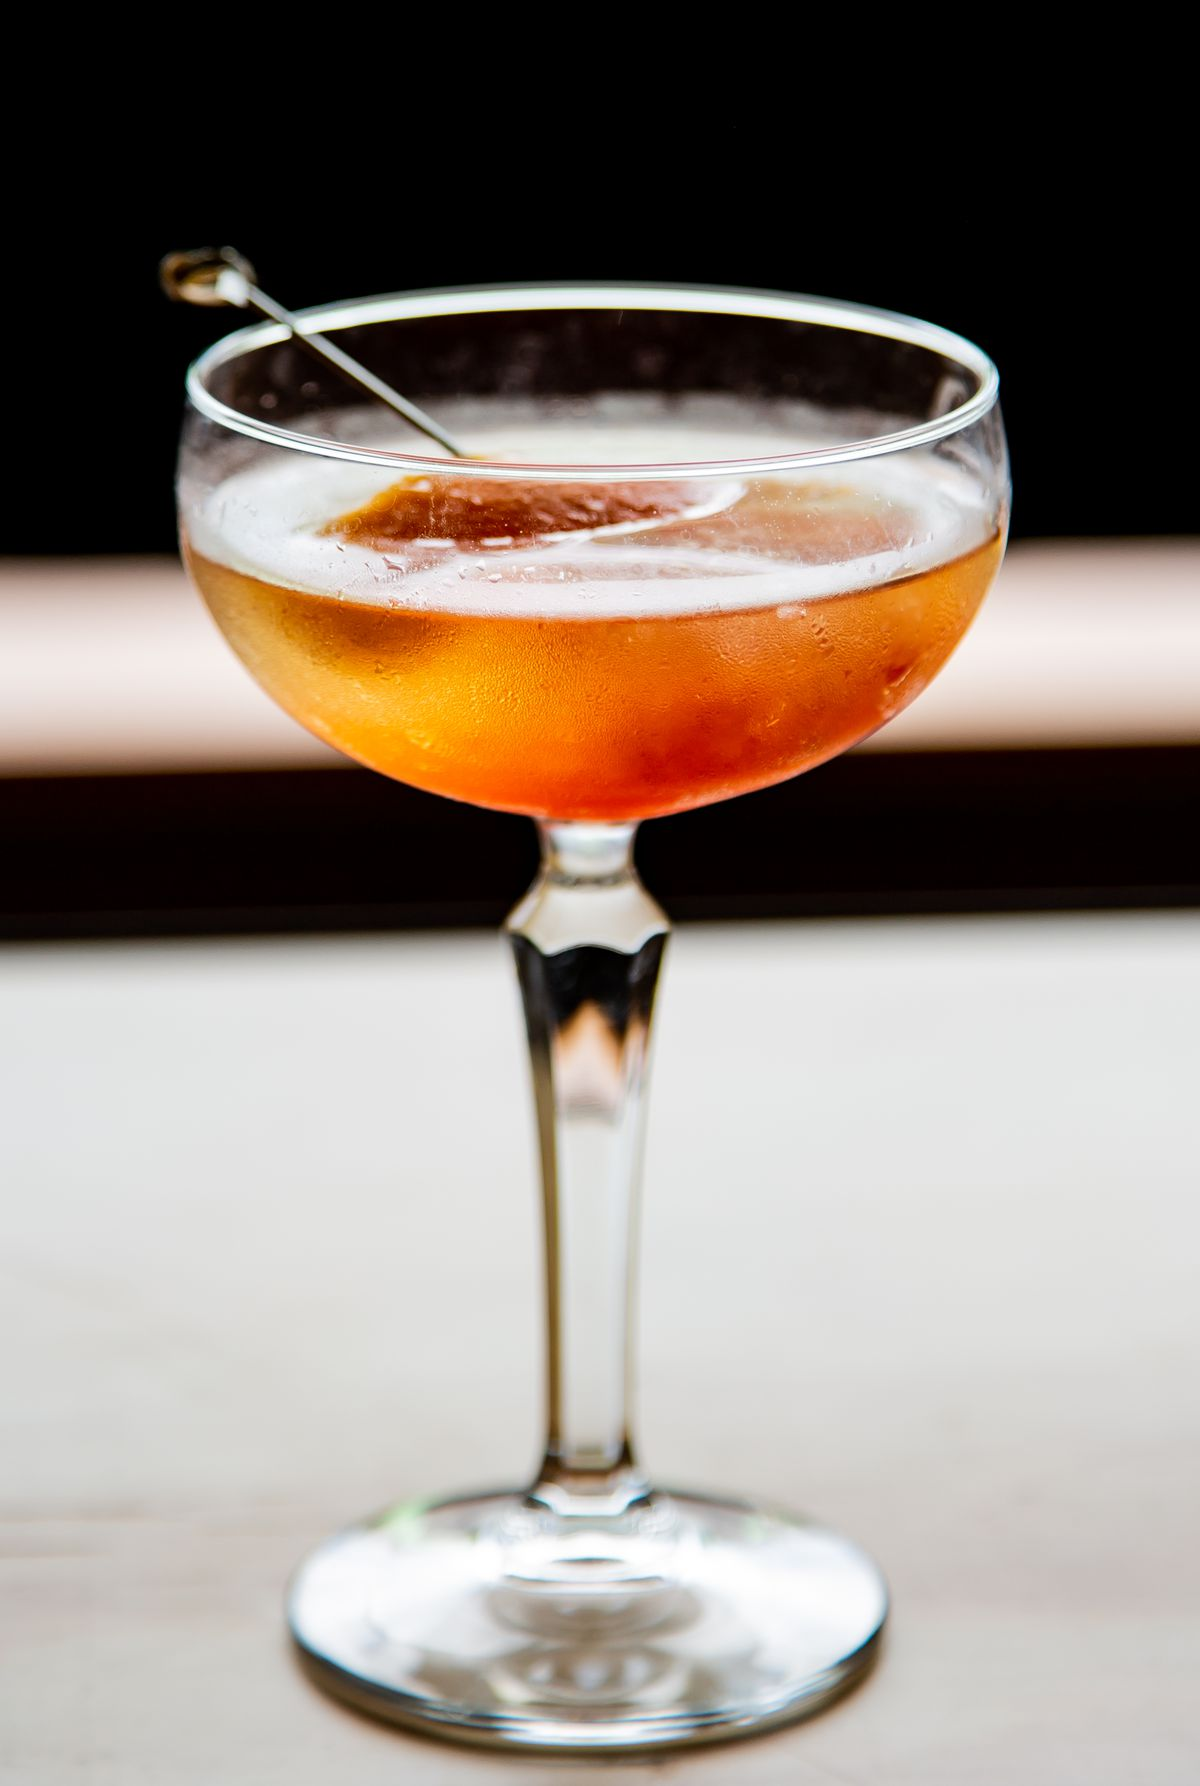 Poppertunities pairs sparkling wine with either an Aperol and grapefruit popsicle or a St. Germain and pineapple juice popsicle